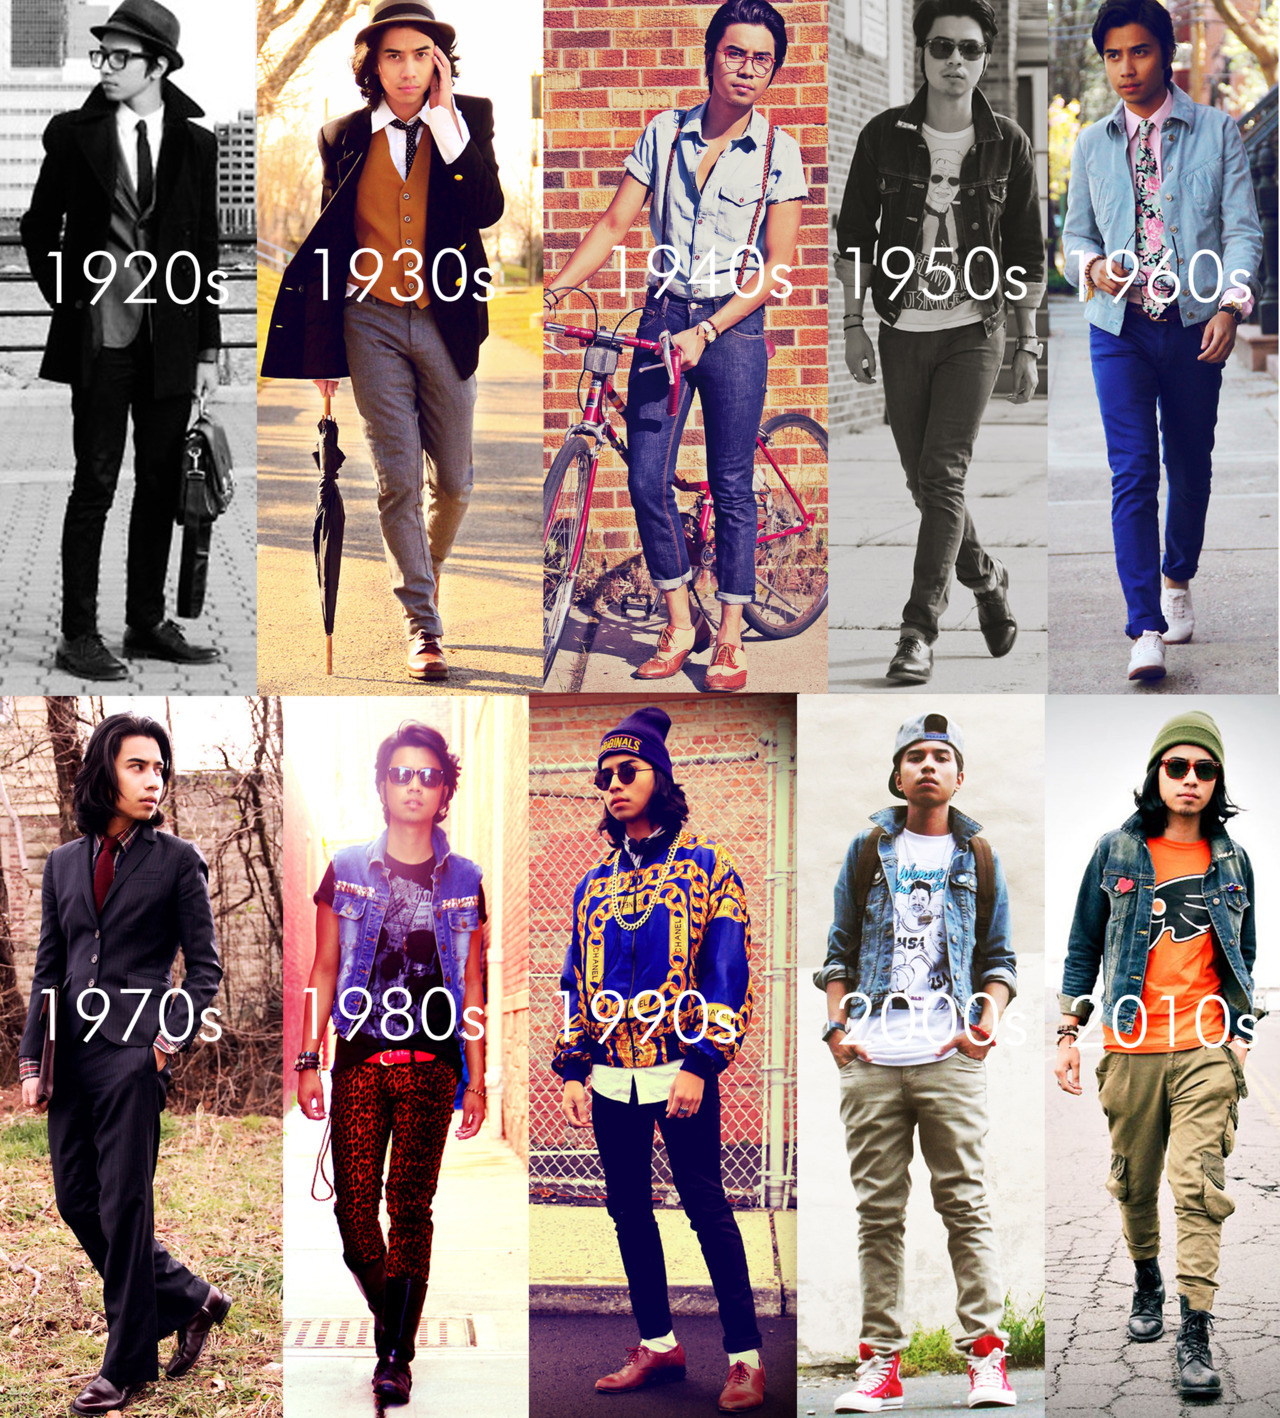 dennysworld:  One man. An outfit for every decade with a modern twist. I've been posting my daily outfit for 2 1/2 years now. Within these 2 years I've worked with gap, h&m, dr.martens, diesel etc. I also became number one male on lookbook.nu, gained countless followers and finally it all came full circle when I landed a job as Wyclef Jean's personal stylist. I couldn't attend college because of financial problems but my dream still became a reality because I stayed true to myself and believed that if I just keep on grinding, good things will happen. Just be you, that's all. Once you start worrying about what people say about you…you start to listen to them and you forget to be yourself. In the end, your opinion should be the last say. Keep it real. - Denny Follow me on instagram @denny623